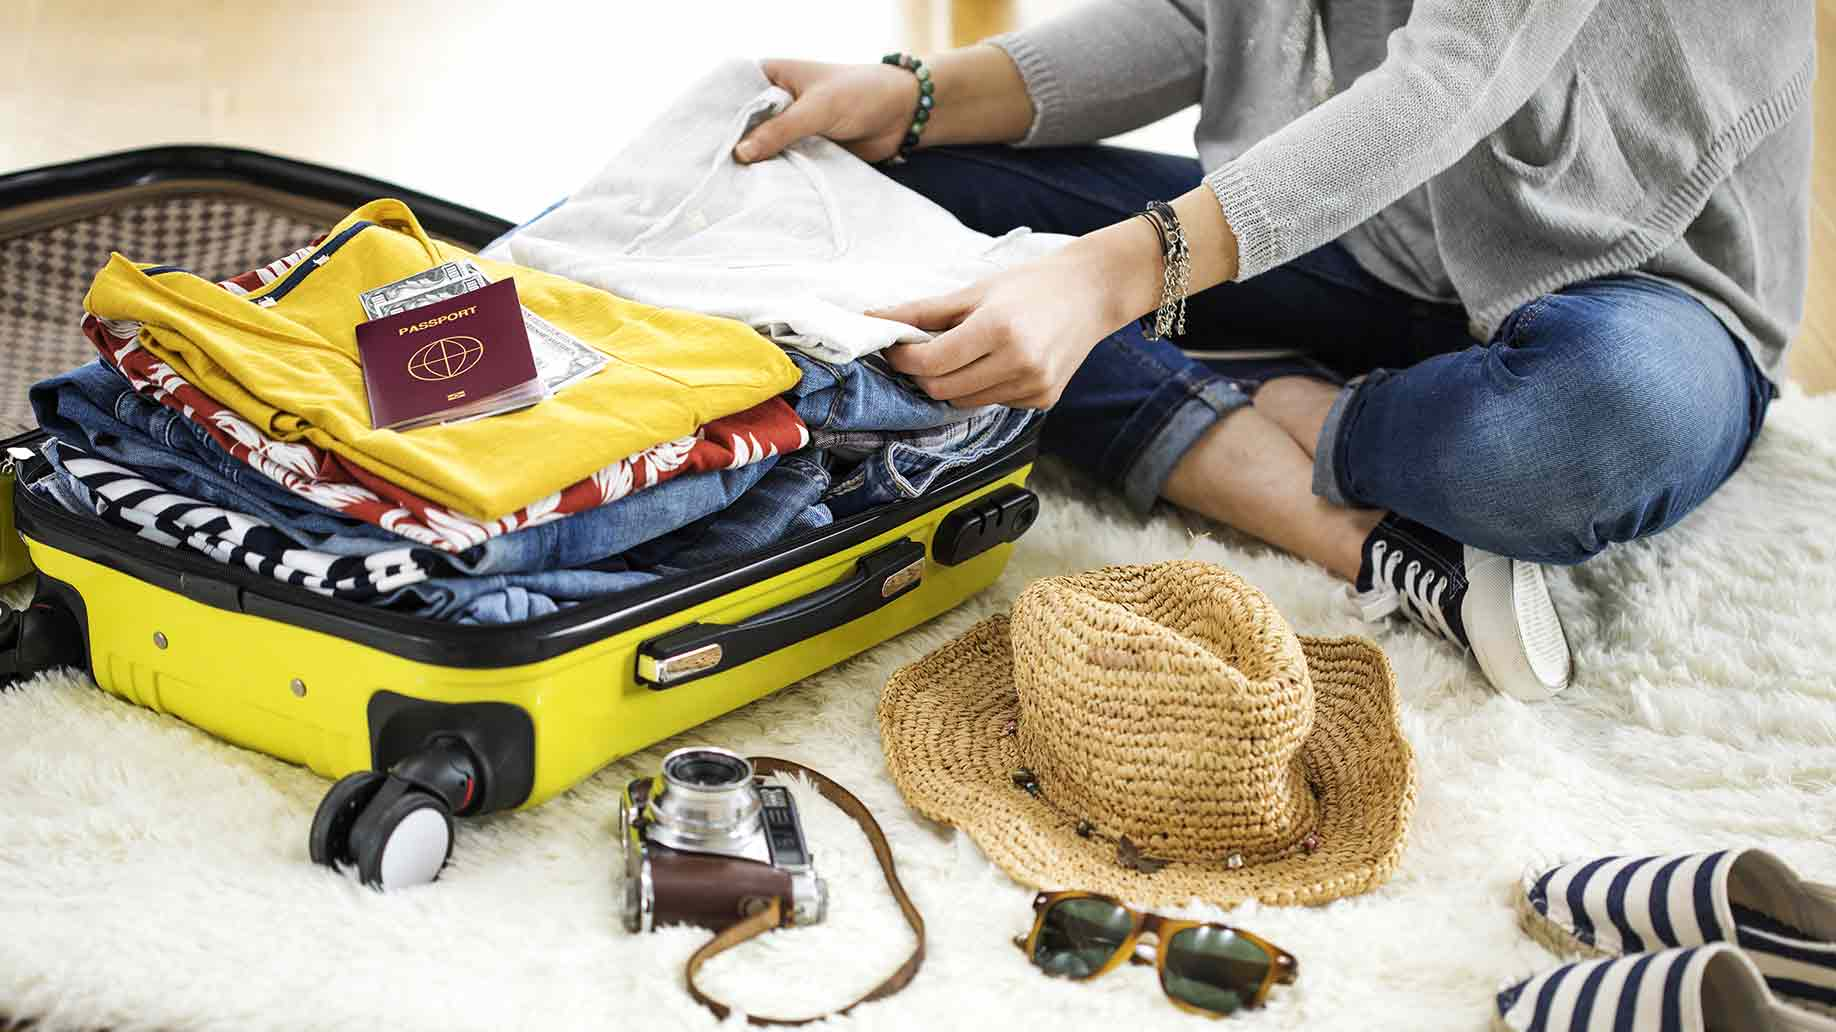 How To Travel Light With Just 1 Bag